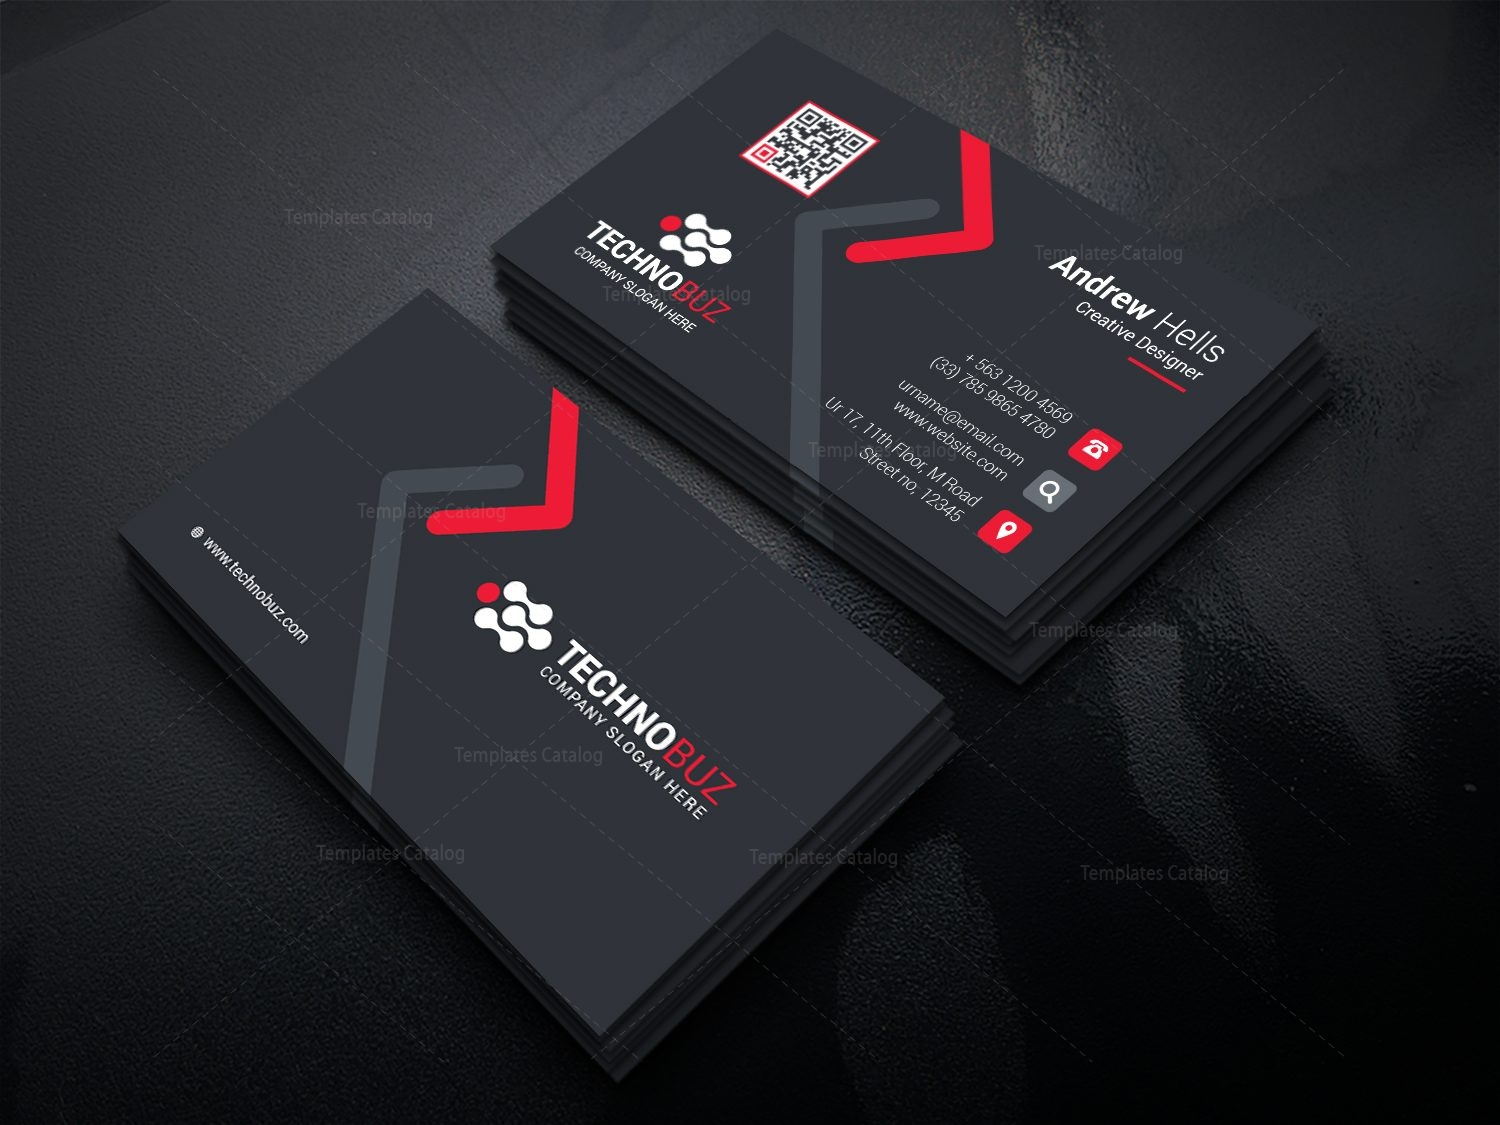 High tech company business card template 000736 template catalog high tech company business card template cheaphphosting Images